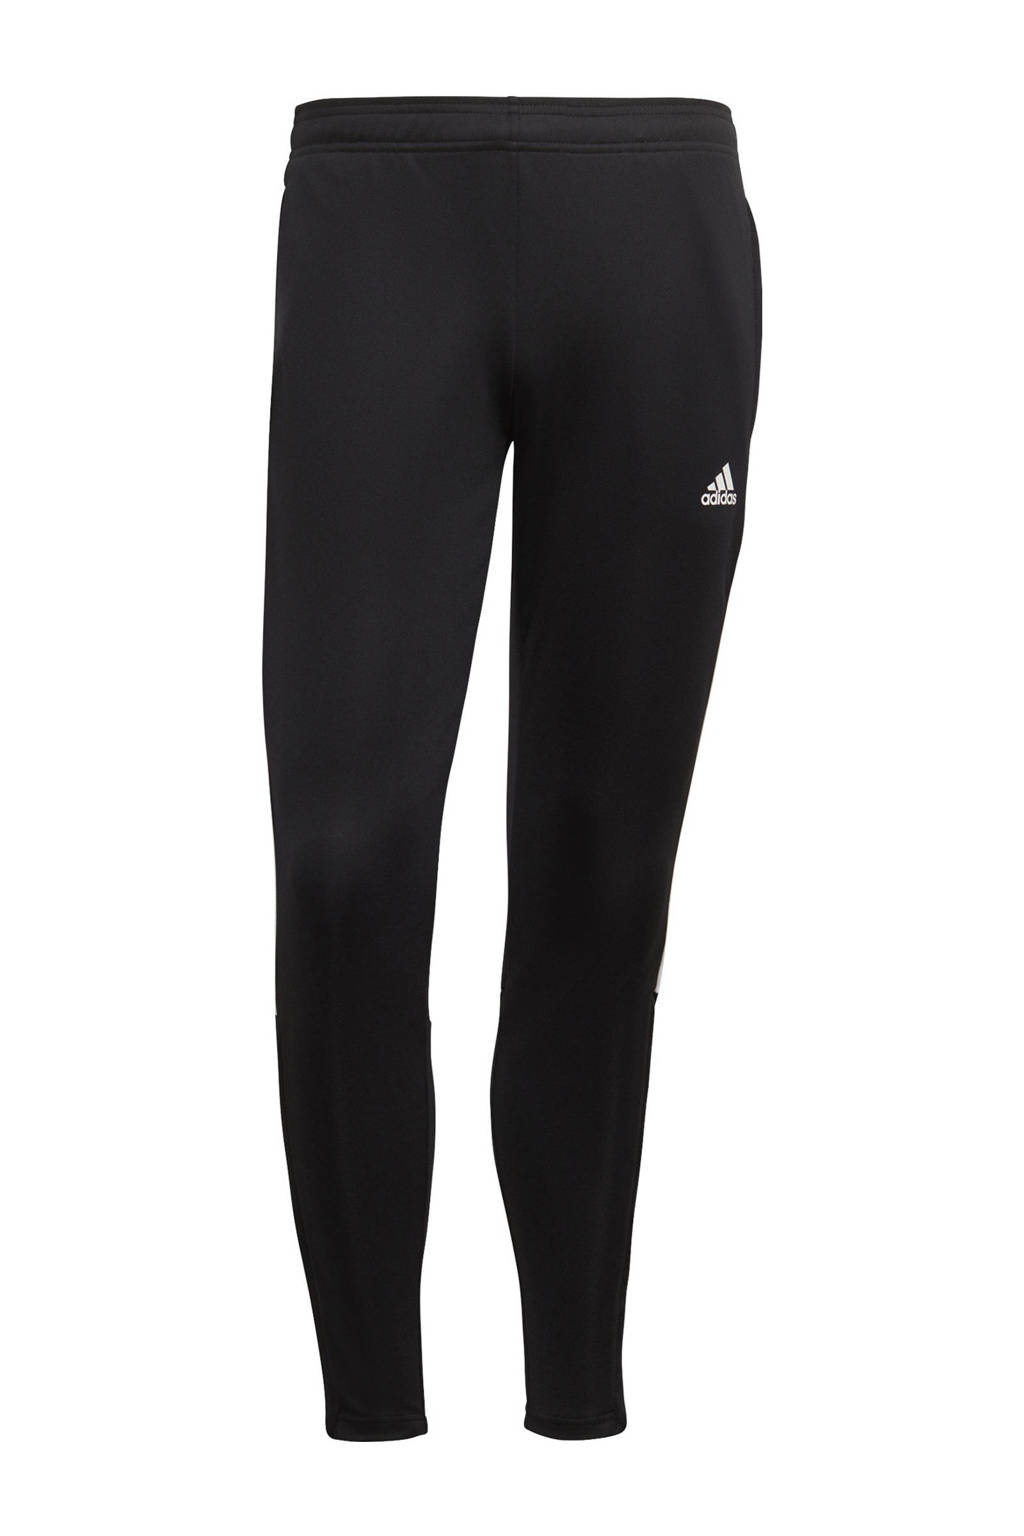 adidas Performance Tiro 21 trainingsbroek zwart, Zwart